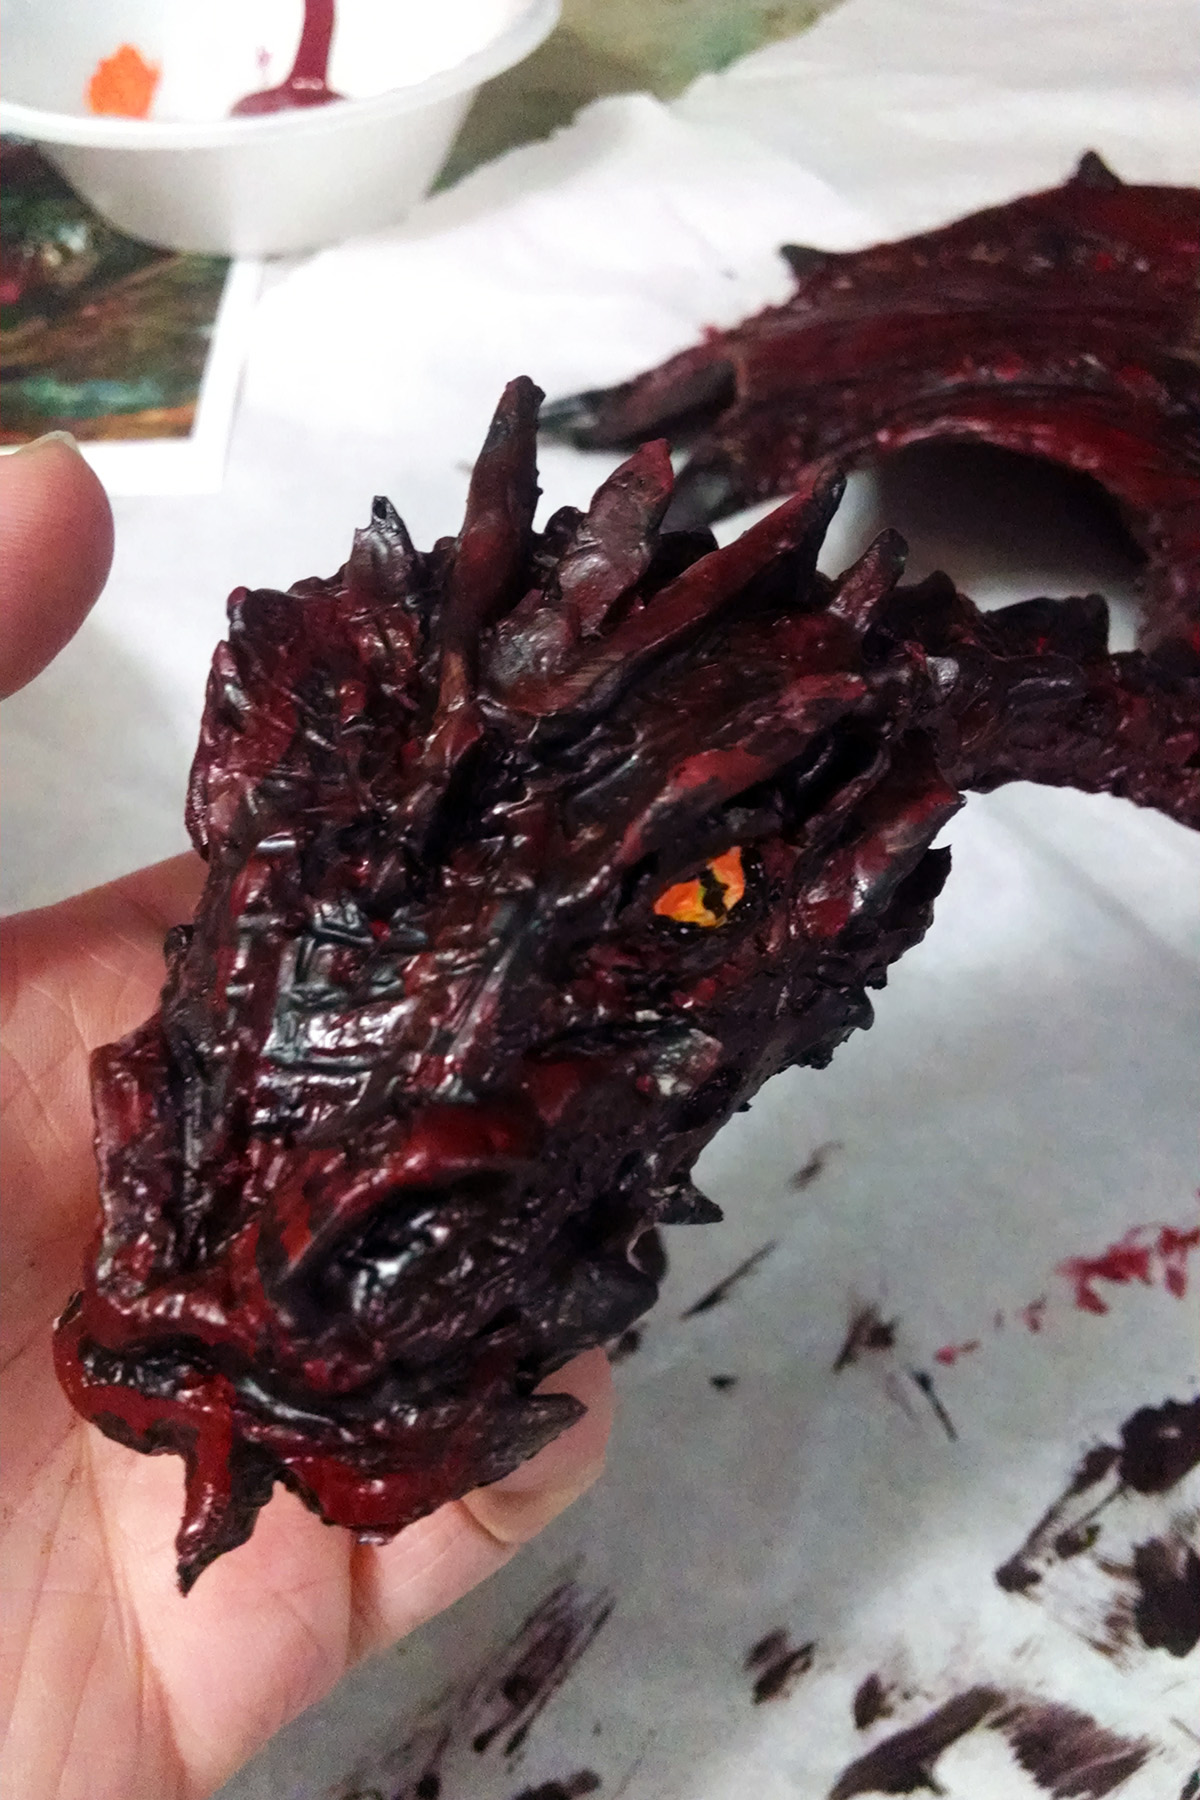 A hand holds up the molded latex Smaug's face, which now has yellow and orange eye detailing added to it.